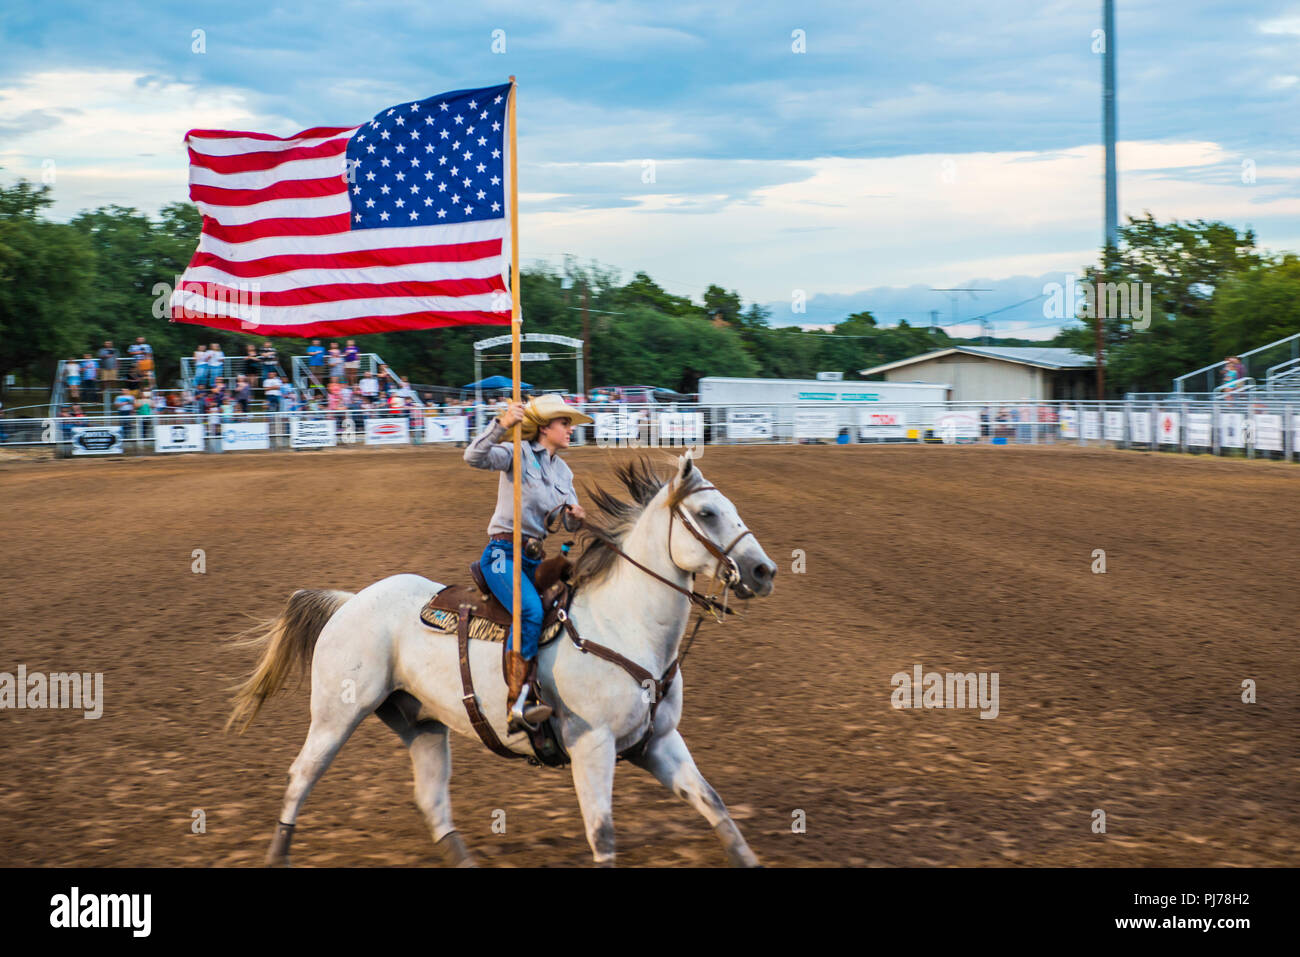 Western Horse Riding Gear High Resolution Stock Photography And Images Alamy